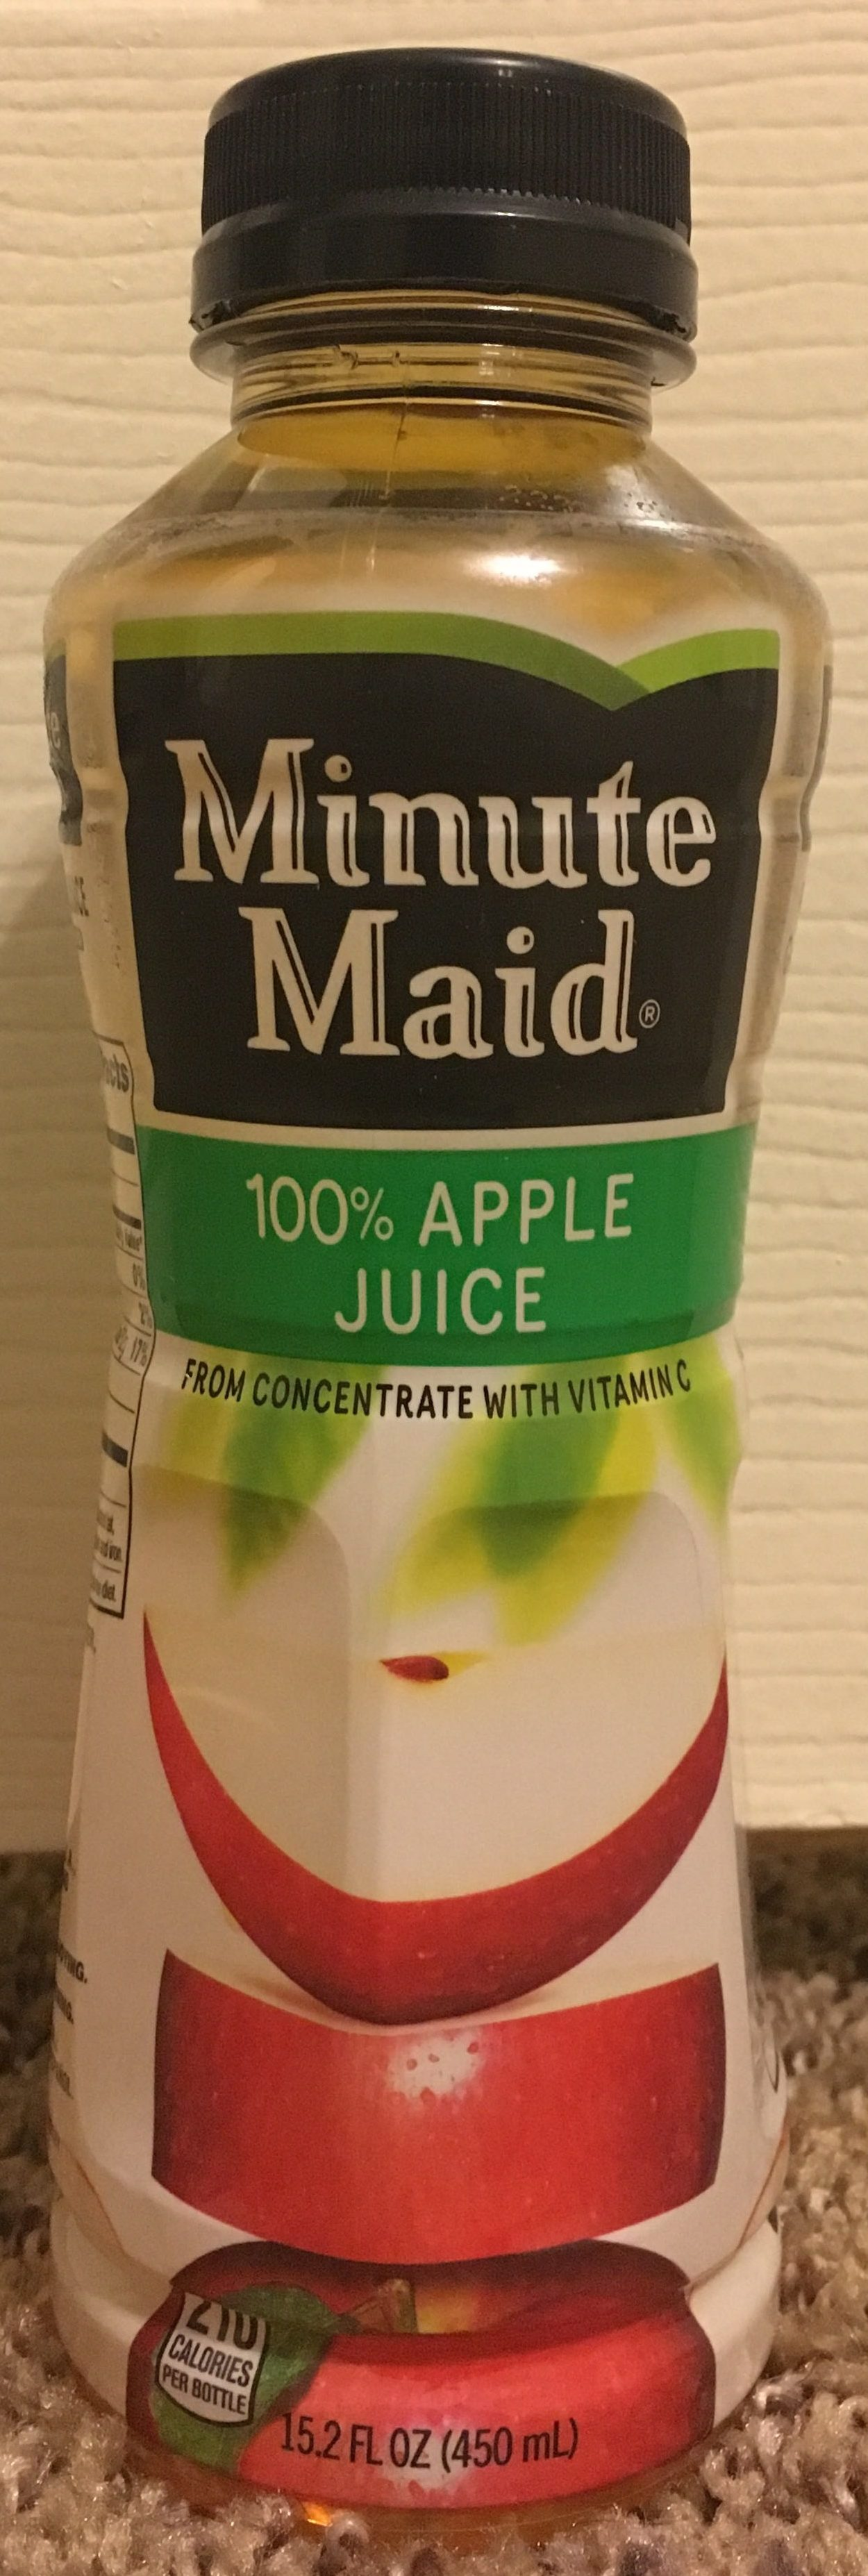 Minute Maid Apple Juice Nutrition Label